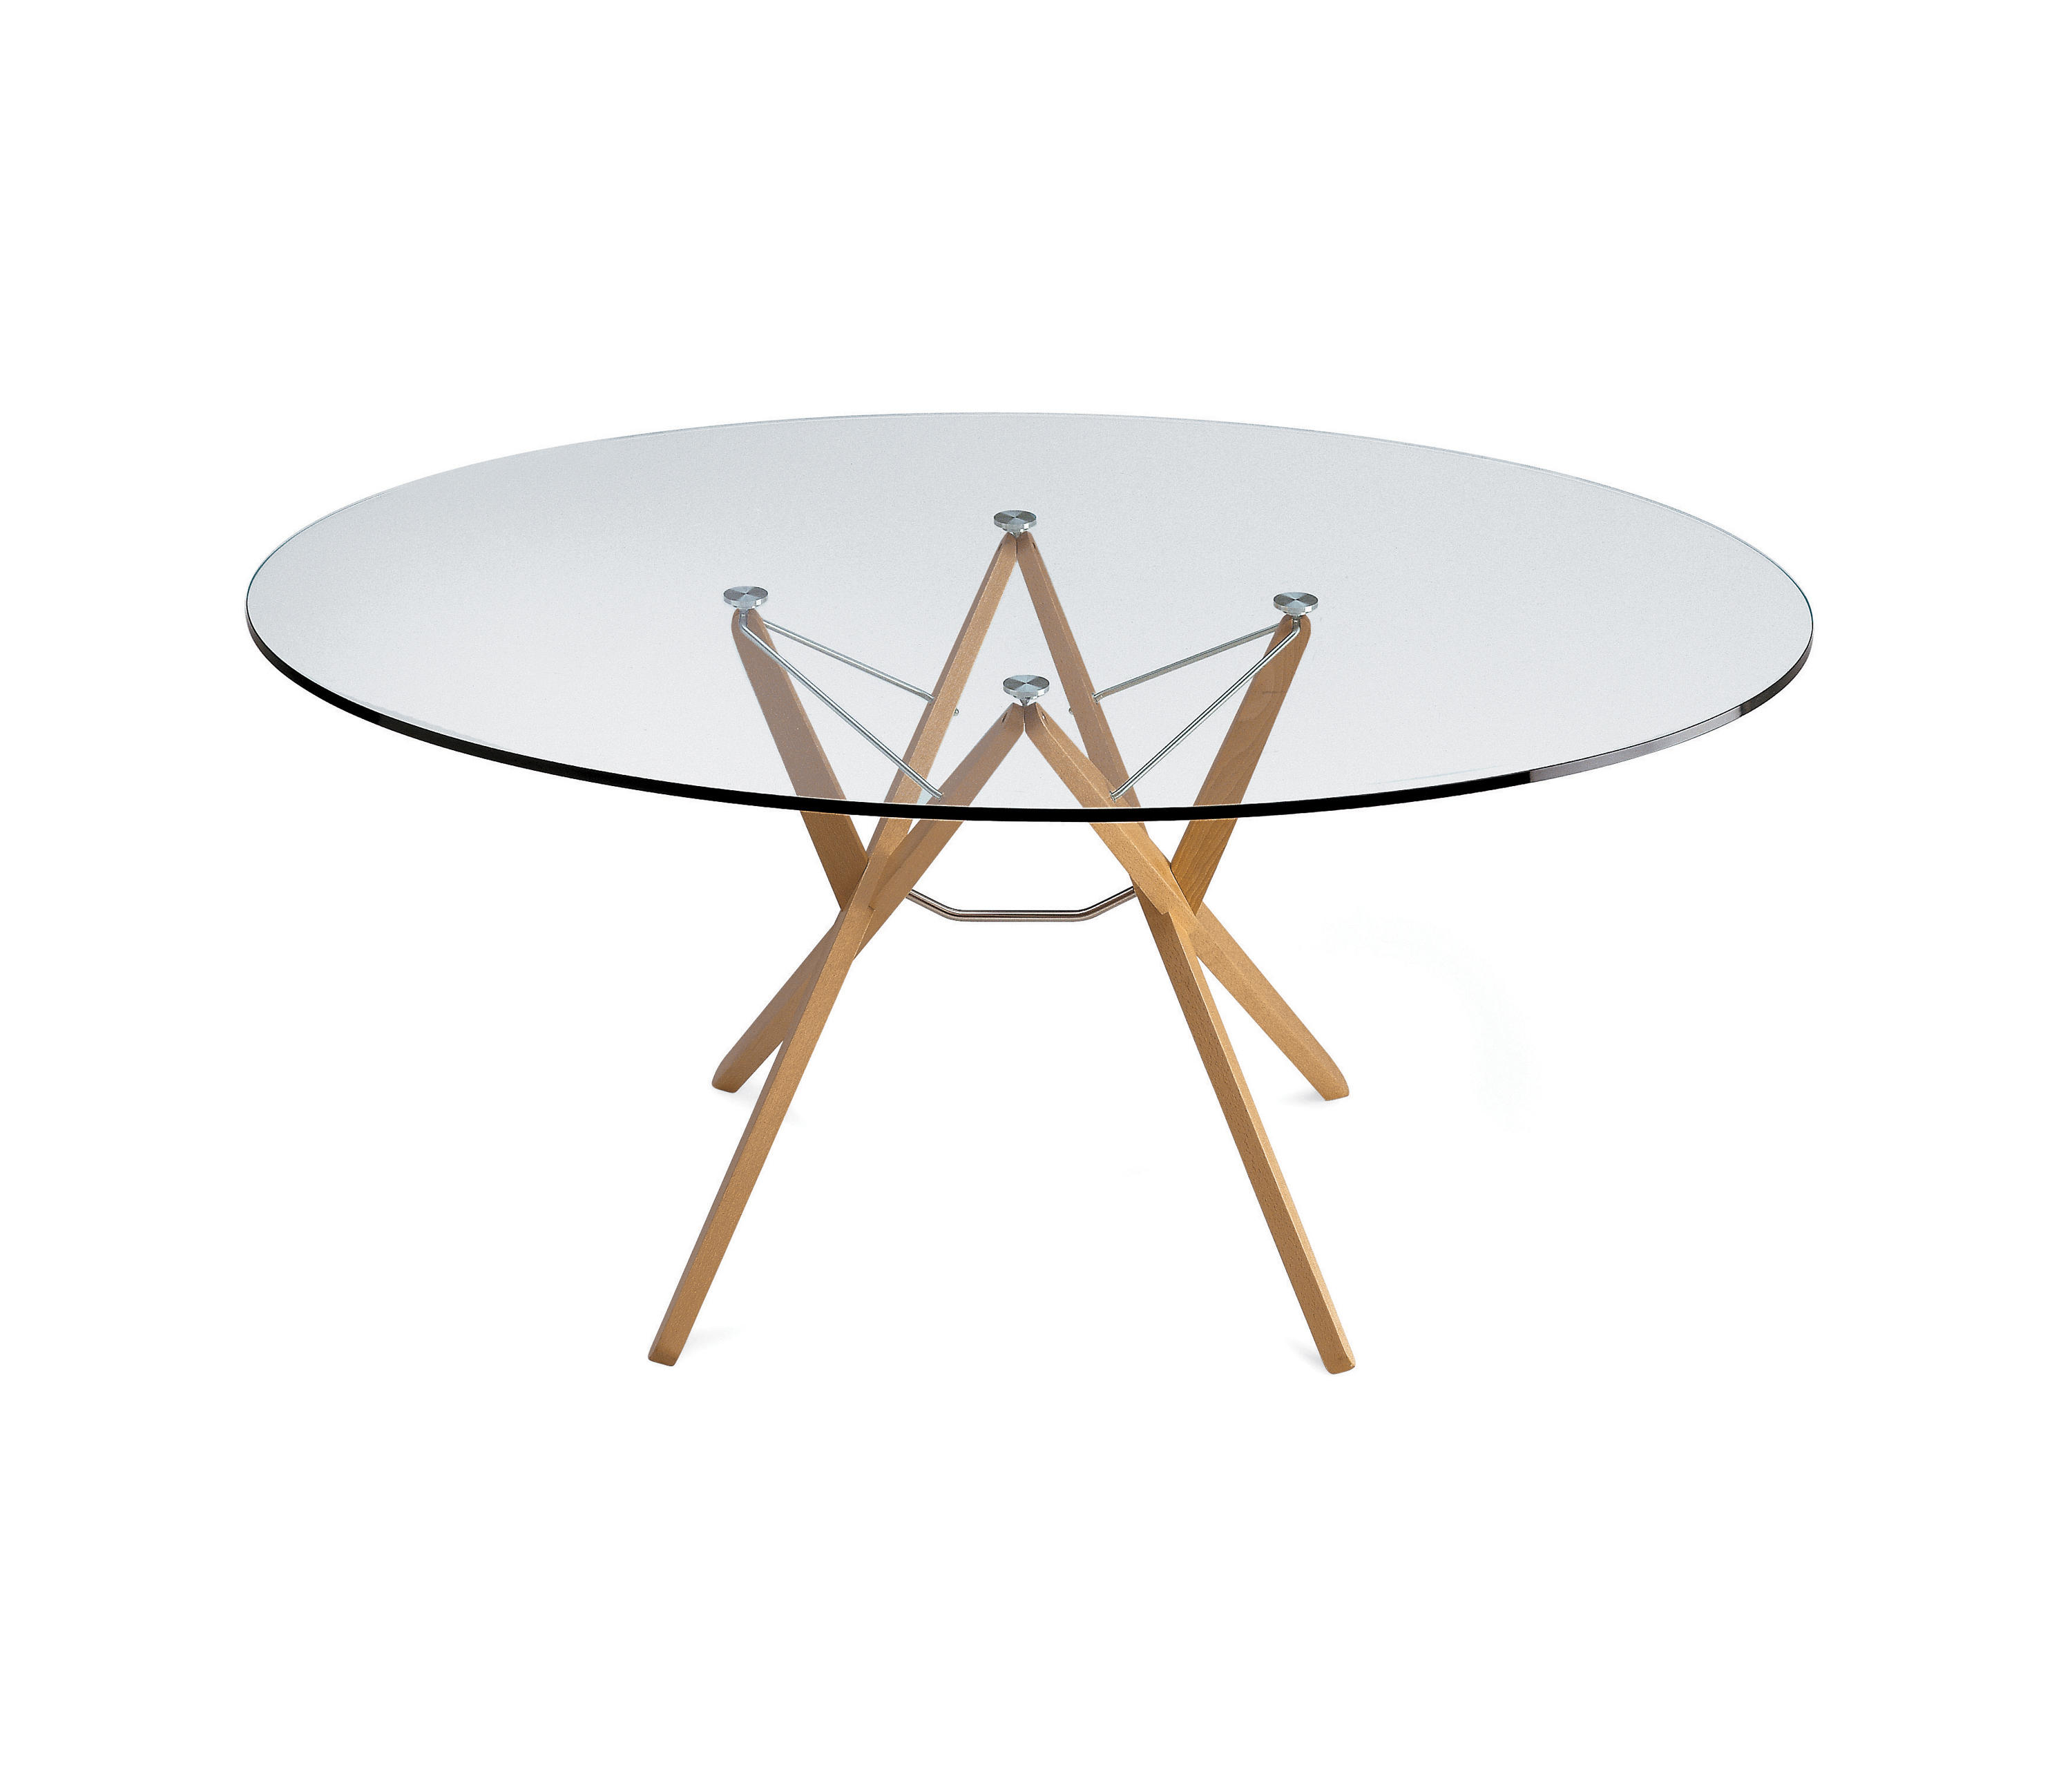 Orione 2337 By Zanotta Dining Tables